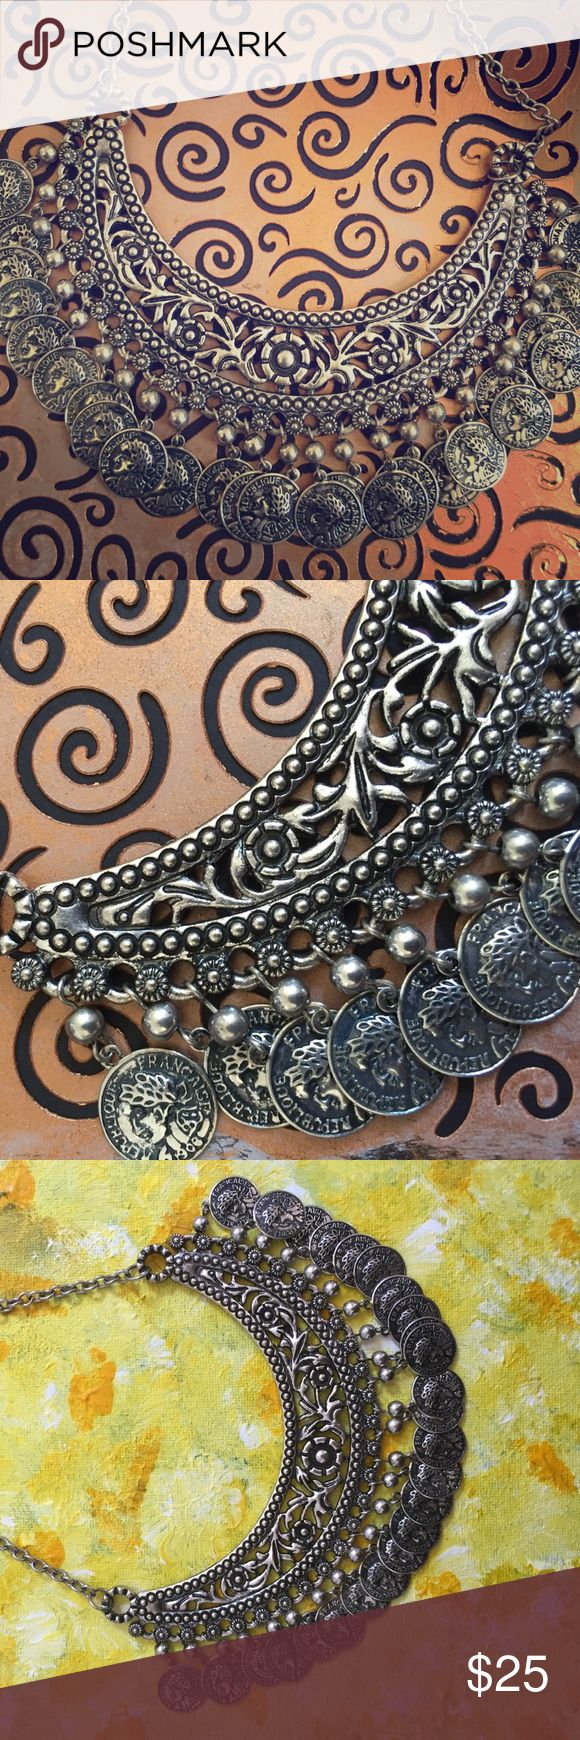 Antique Moroccan Coin Necklace Antique Moroccan Coin Necklace Jewelry Necklaces